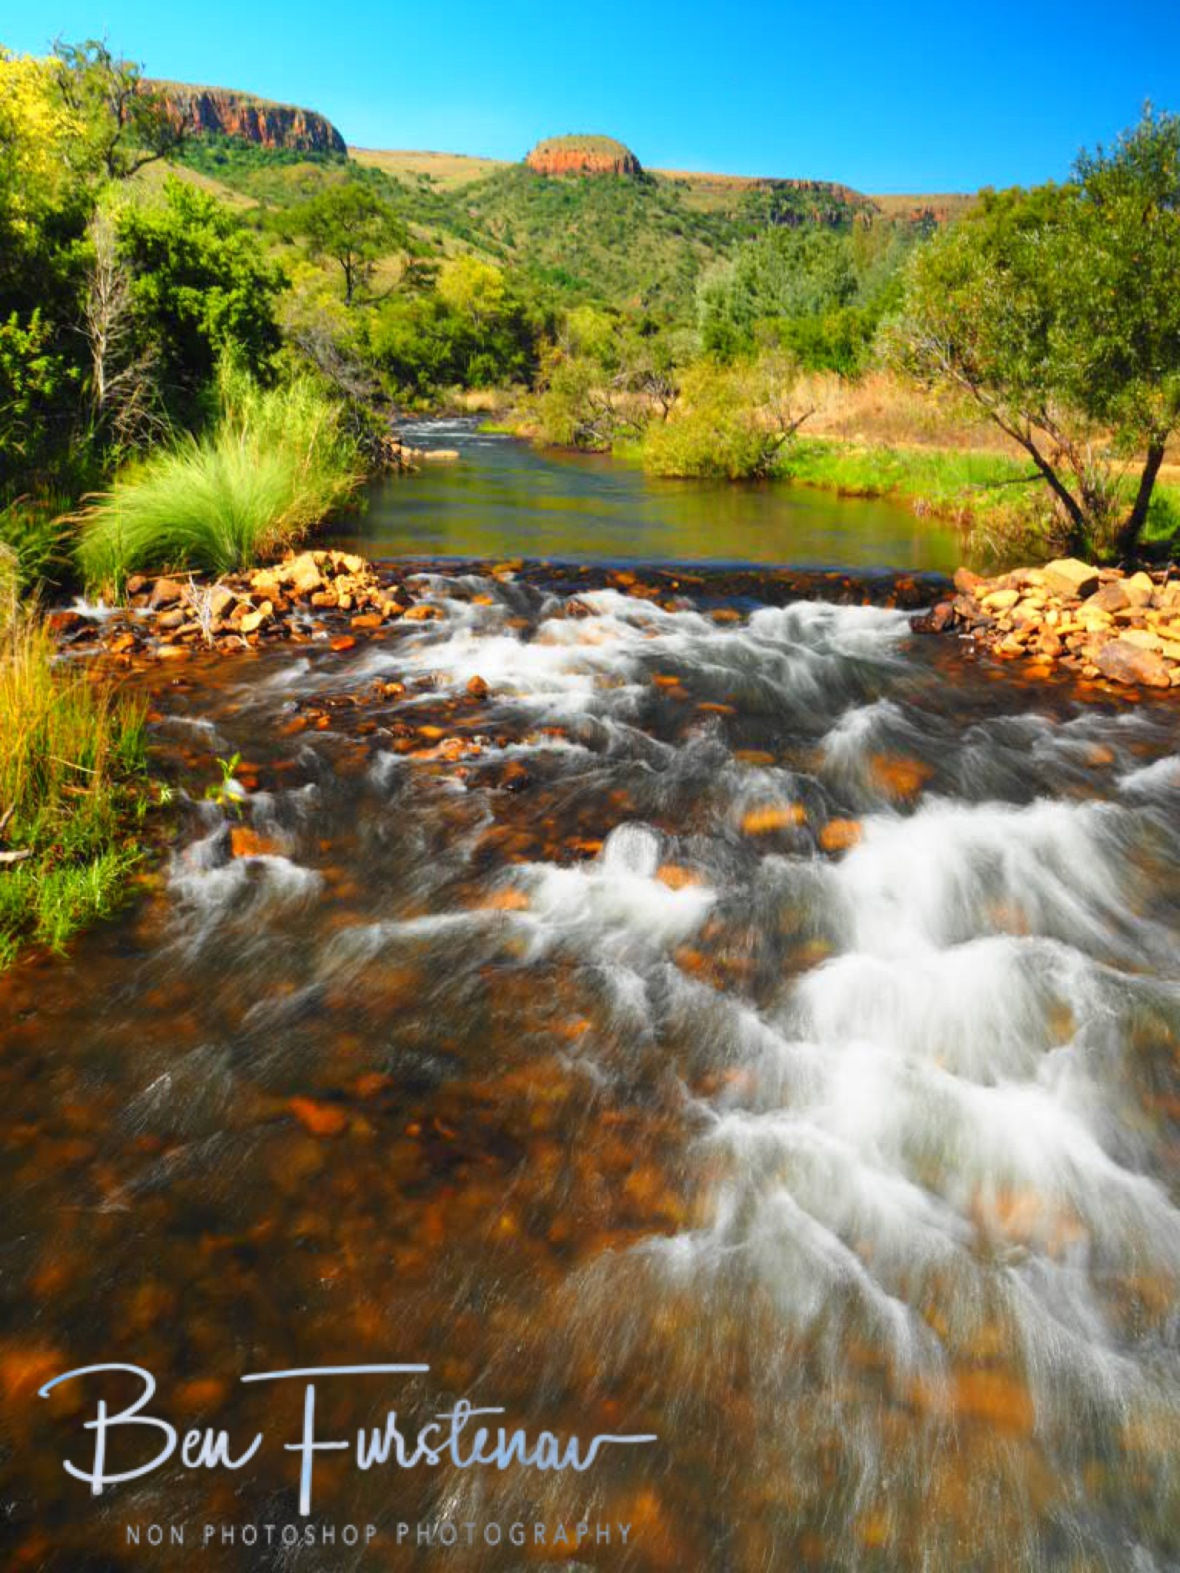 Clear freezing waters rushing to The Valley, Mpumalanga